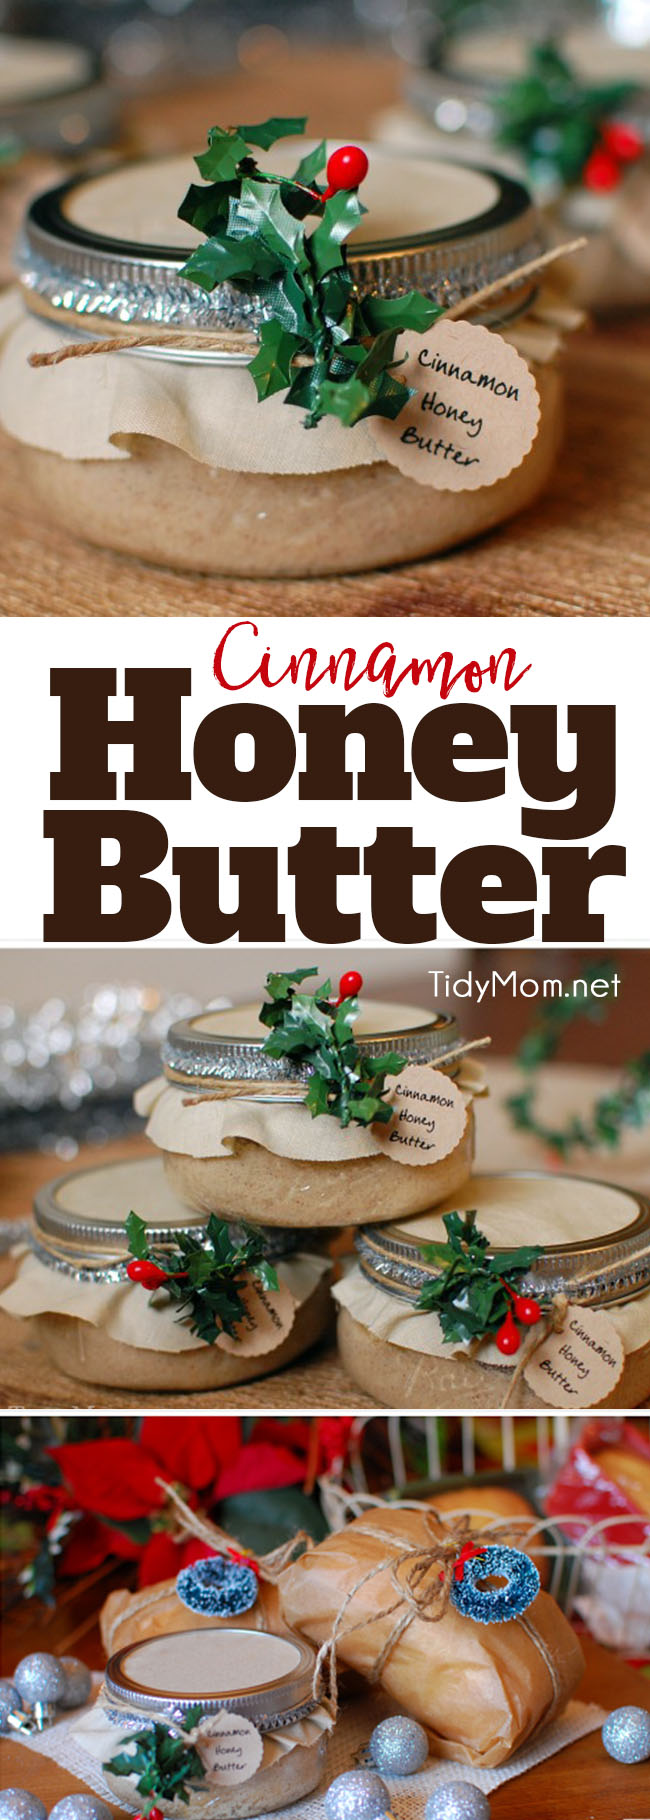 Delicious handmade food gift that requires no baking! Cinnamon Honey Butter makes a beautiful gift in a jar when paired with homemade bread or pound cake. Get the easy recipe + gift jar tutorial at TidyMom.net #handmadegift #honeybutter #giftsinjars #handemadechristmas #recipe #craft